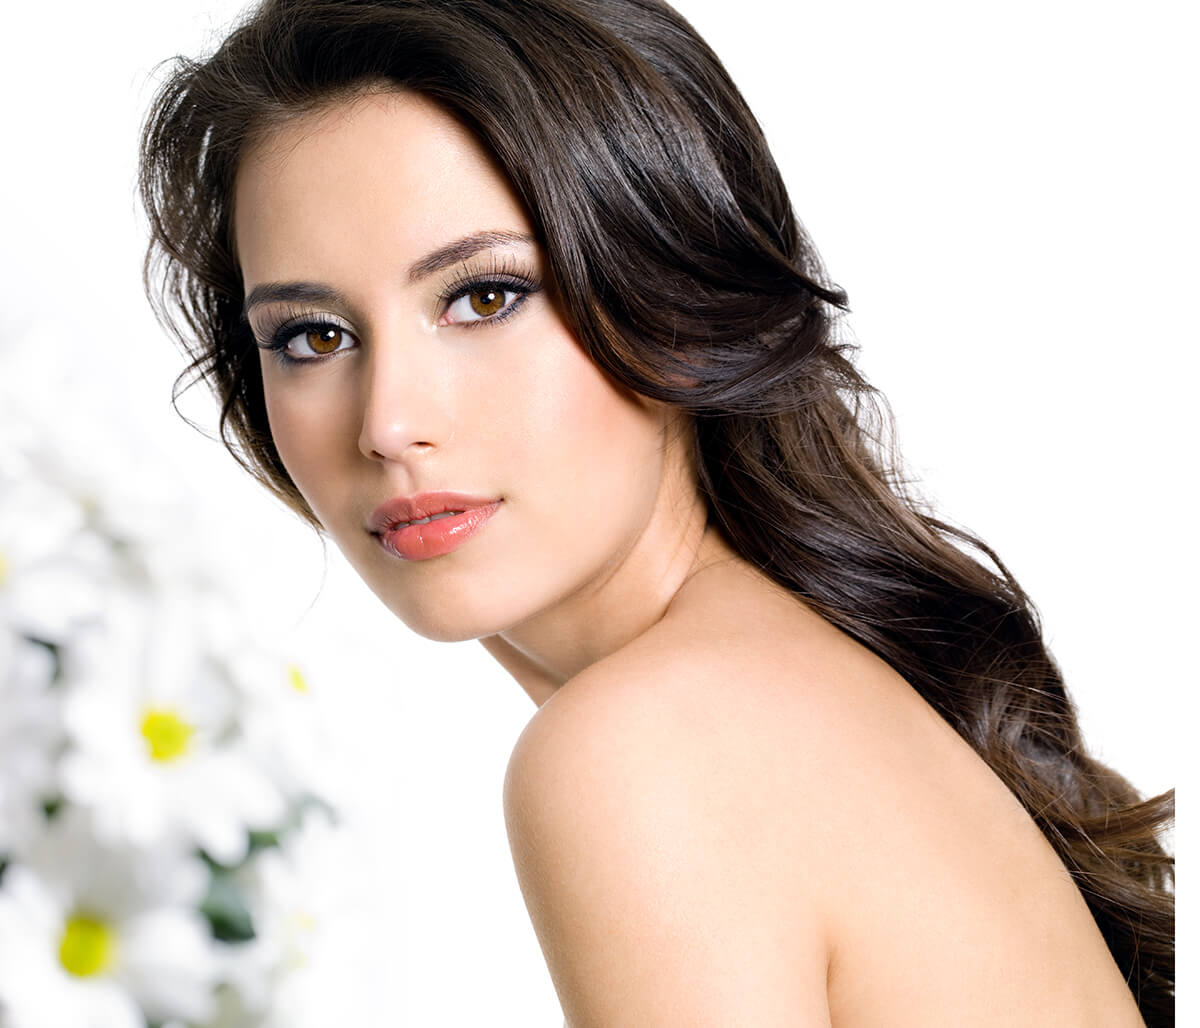 Fraxel Laser Therapy Improves the Skin for West Palm Beach, FL Area